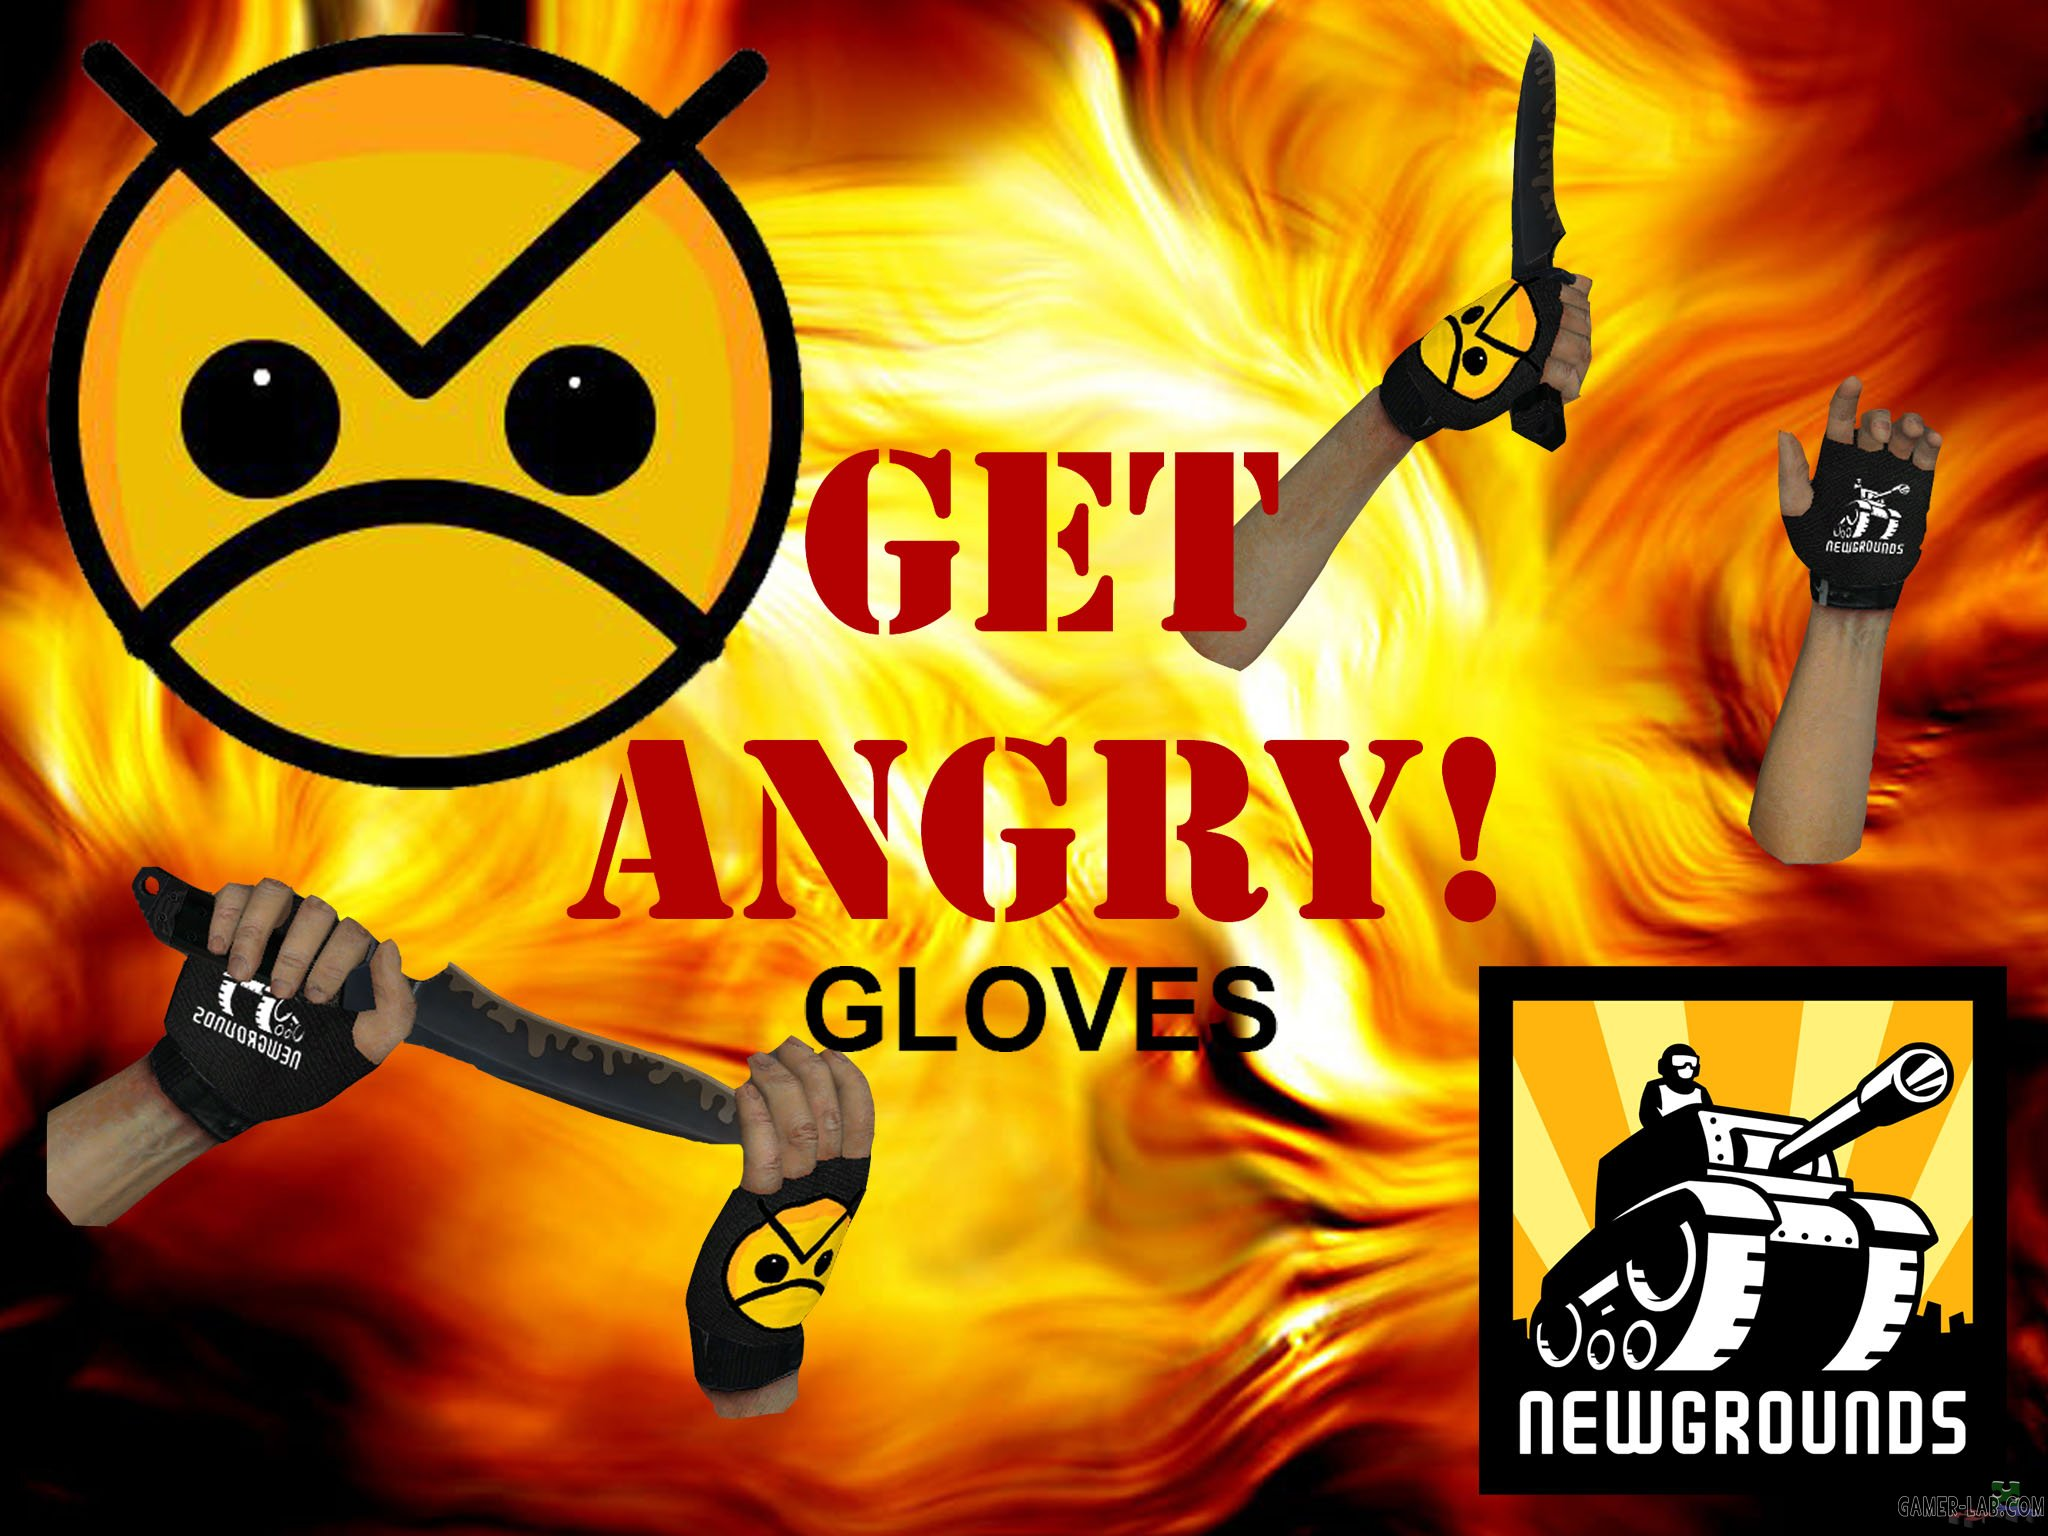 Get_Angry_Gloves_Redux